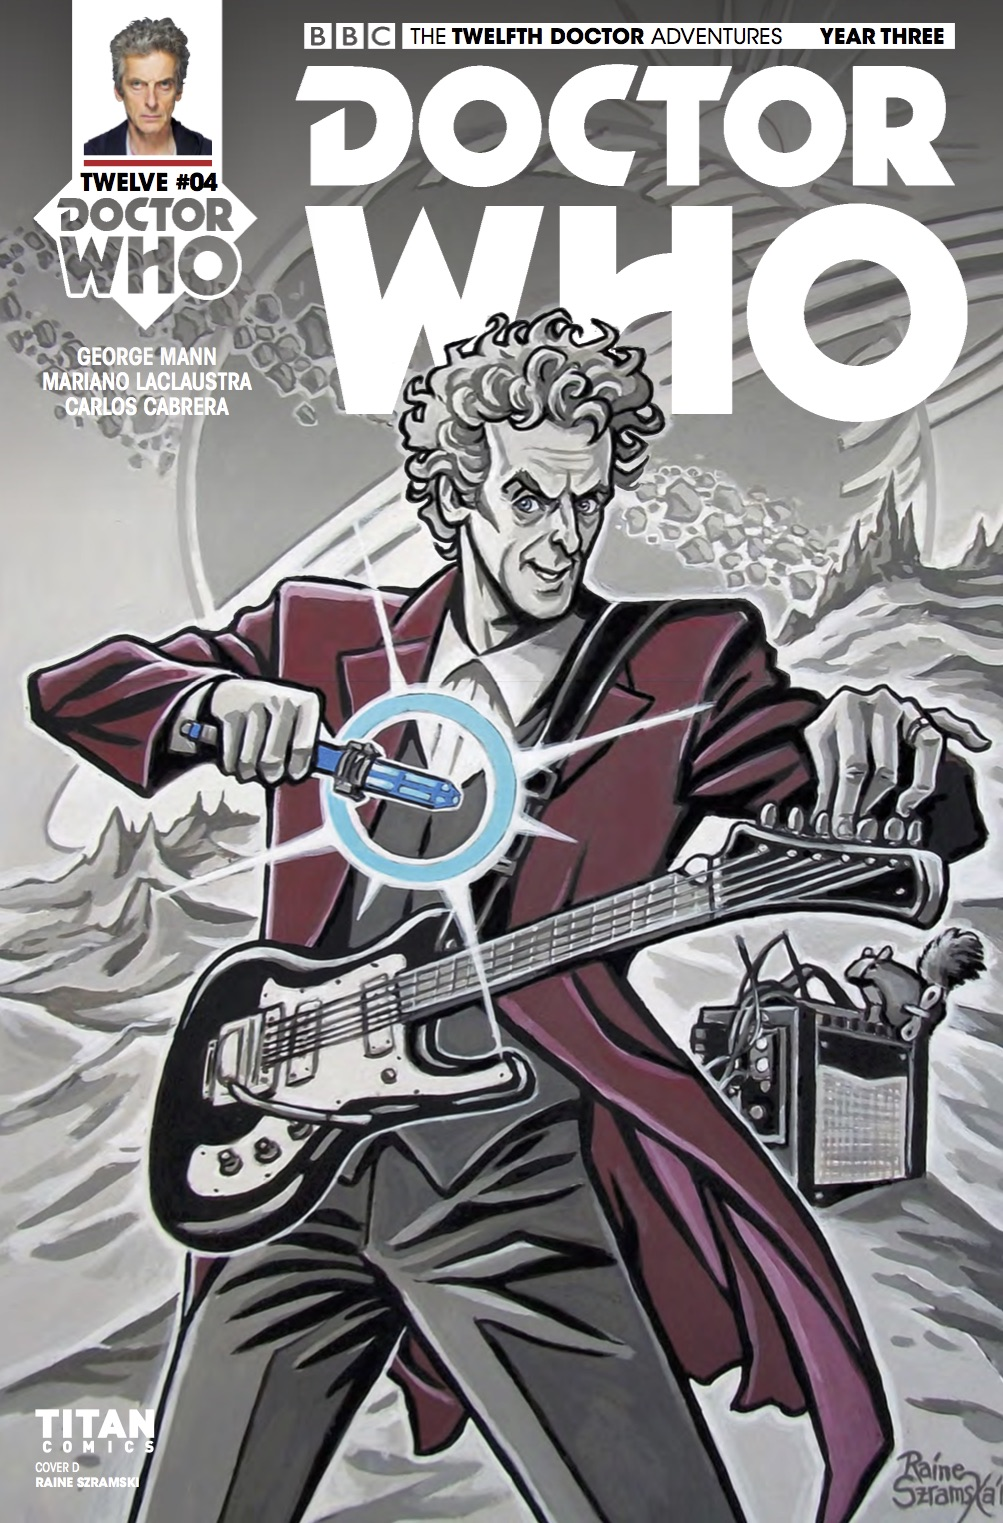 TITAN COMICS - DOCTOR WHO: TWELFTH DOCTOR YEAR 3 #4​ - Cover D: Raine Szramski